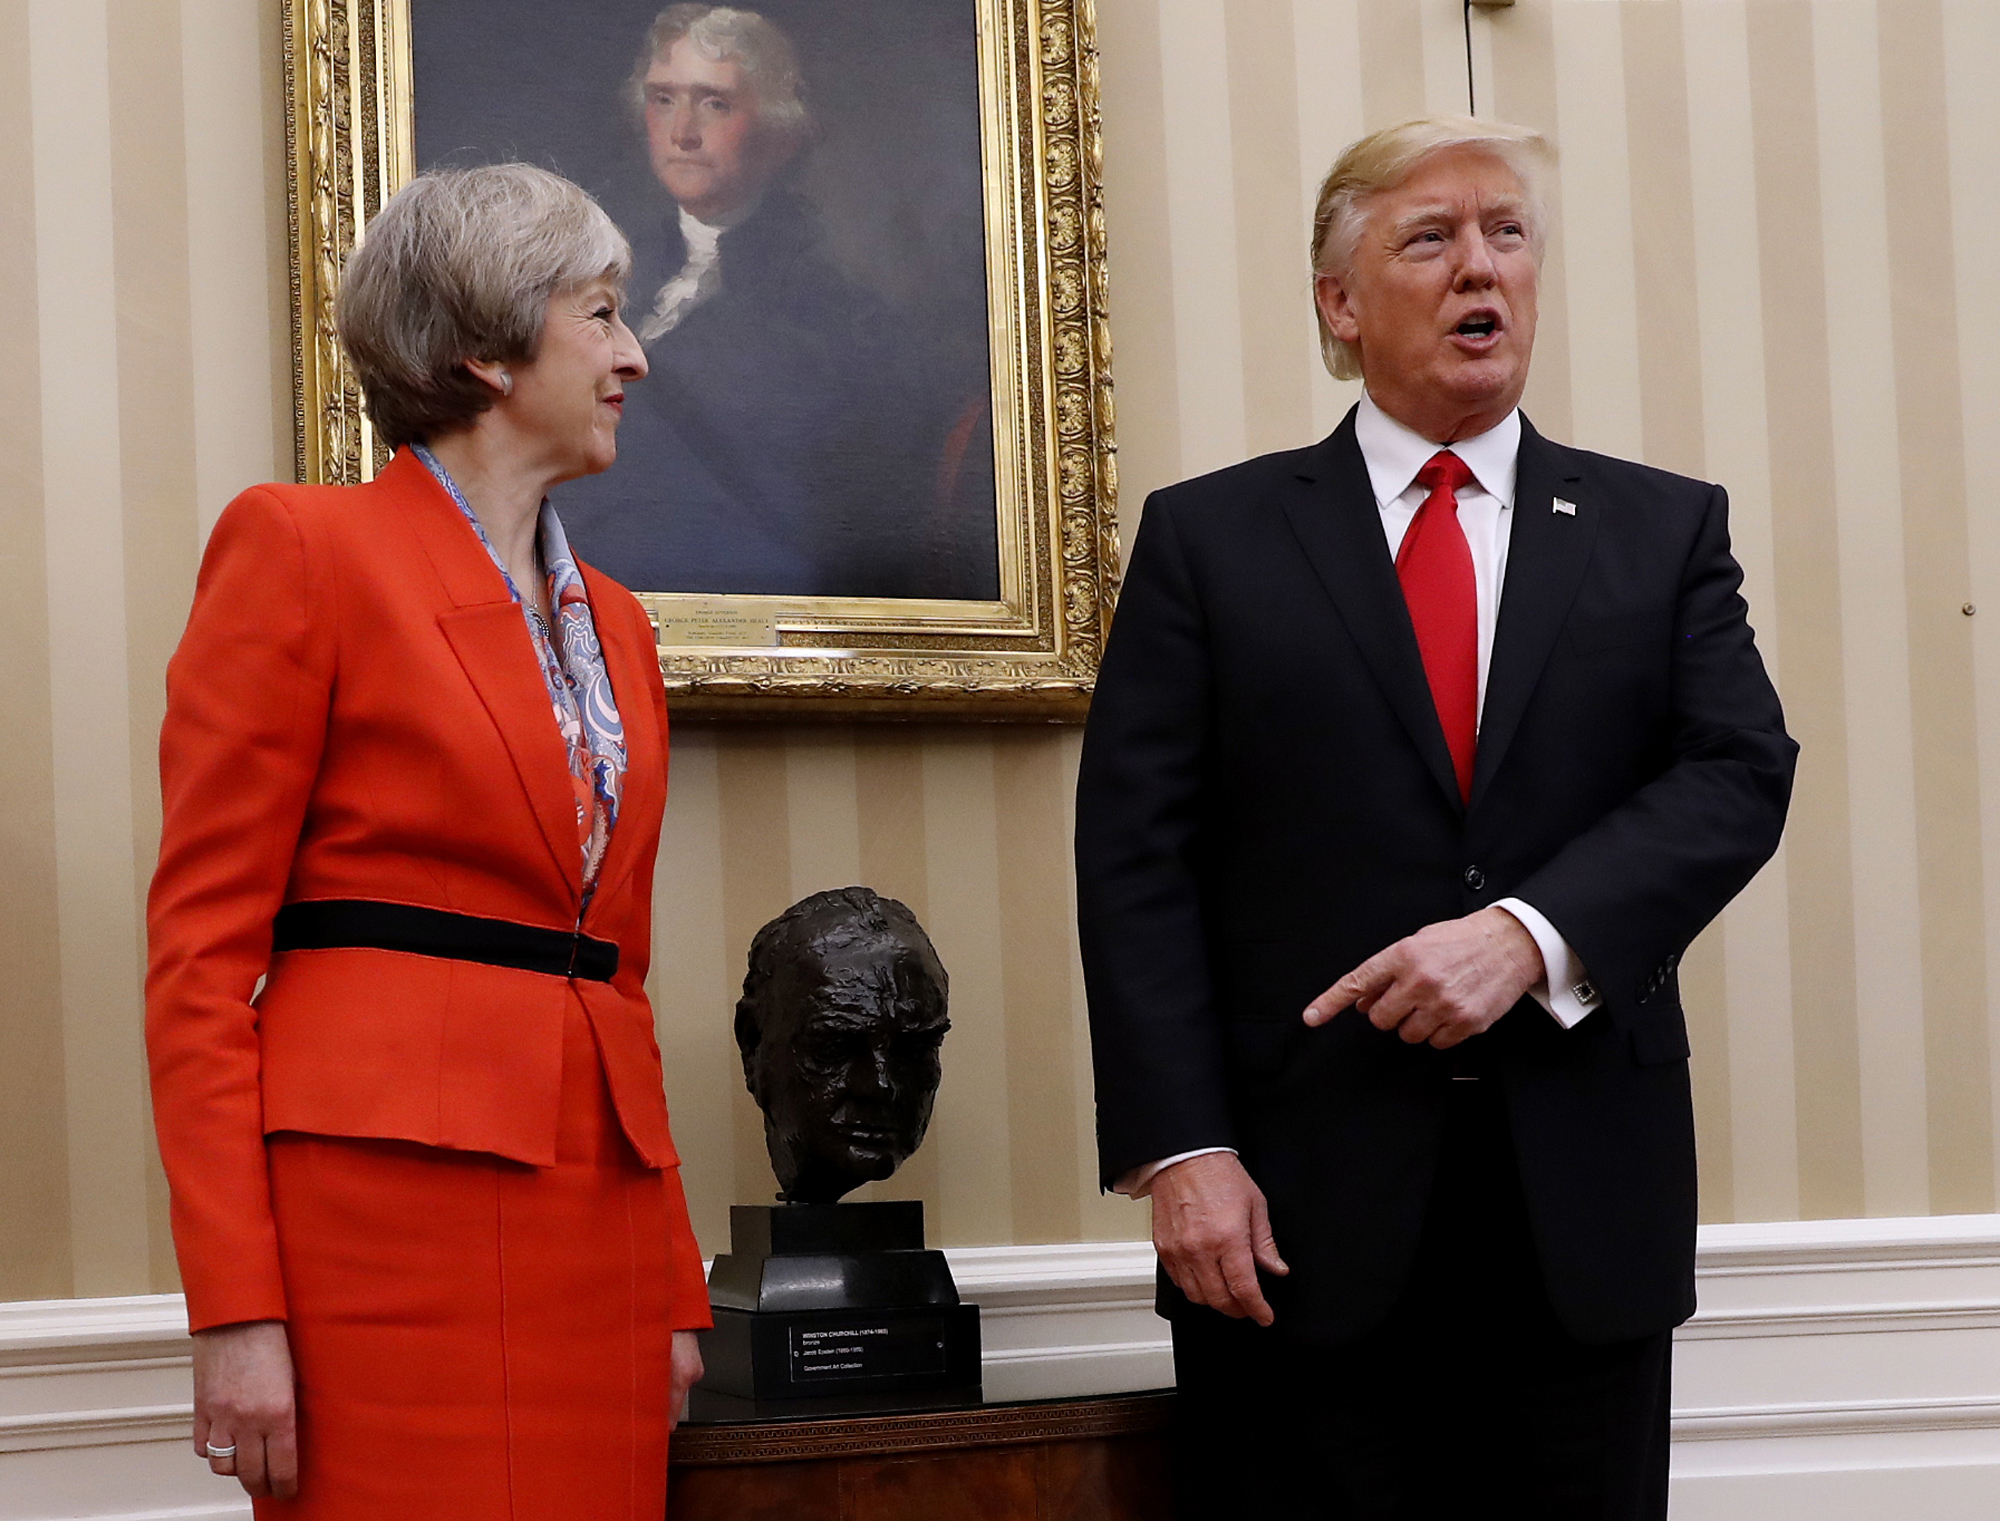 President Donald Trump meets with British Prime Minister Theresa May in the Oval Office of the White House in Washington on Jan. 27, 2017. (AP Photo/Pablo Martinez Monsivais)